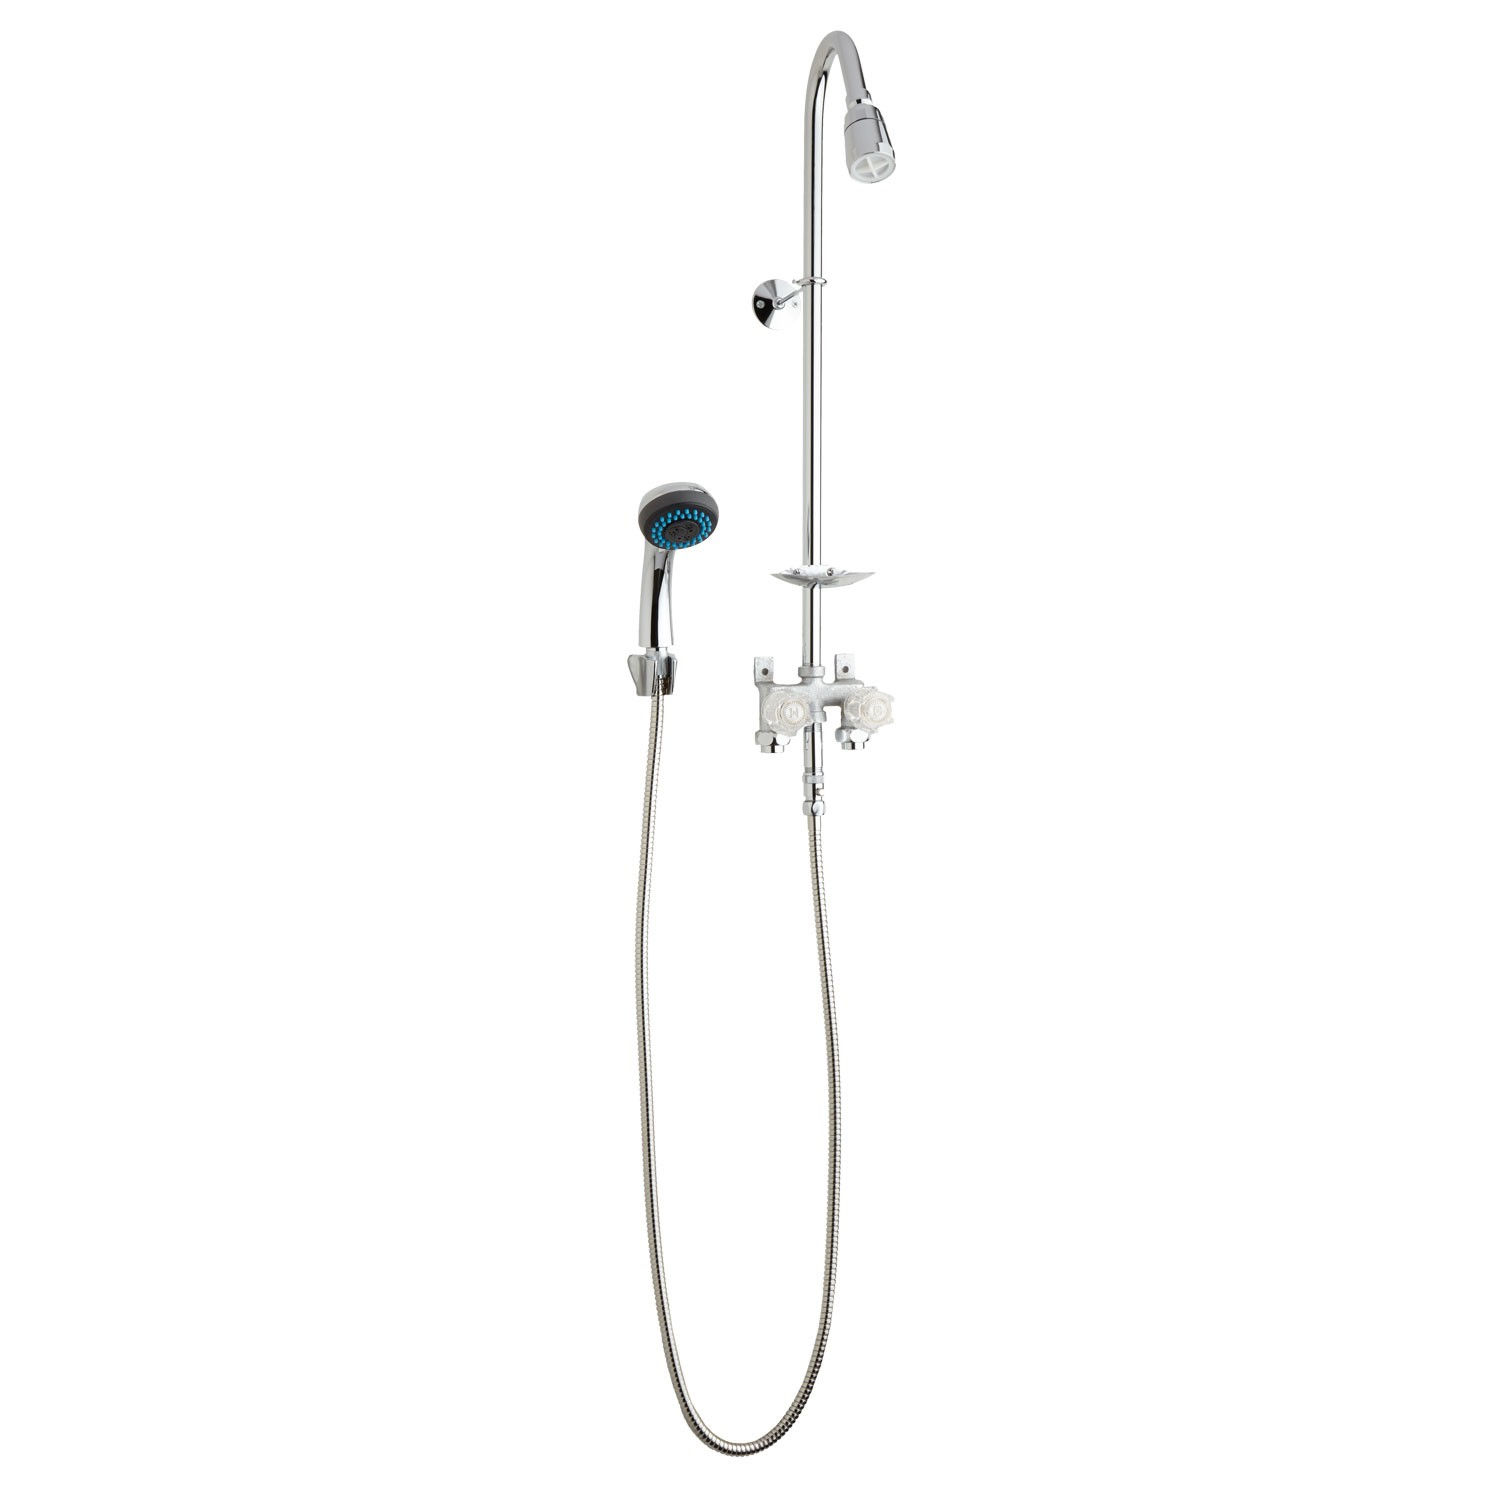 exposed shower faucet kit. outdoor shower faucets \u2013 21 reason to buy exposed faucet kit r